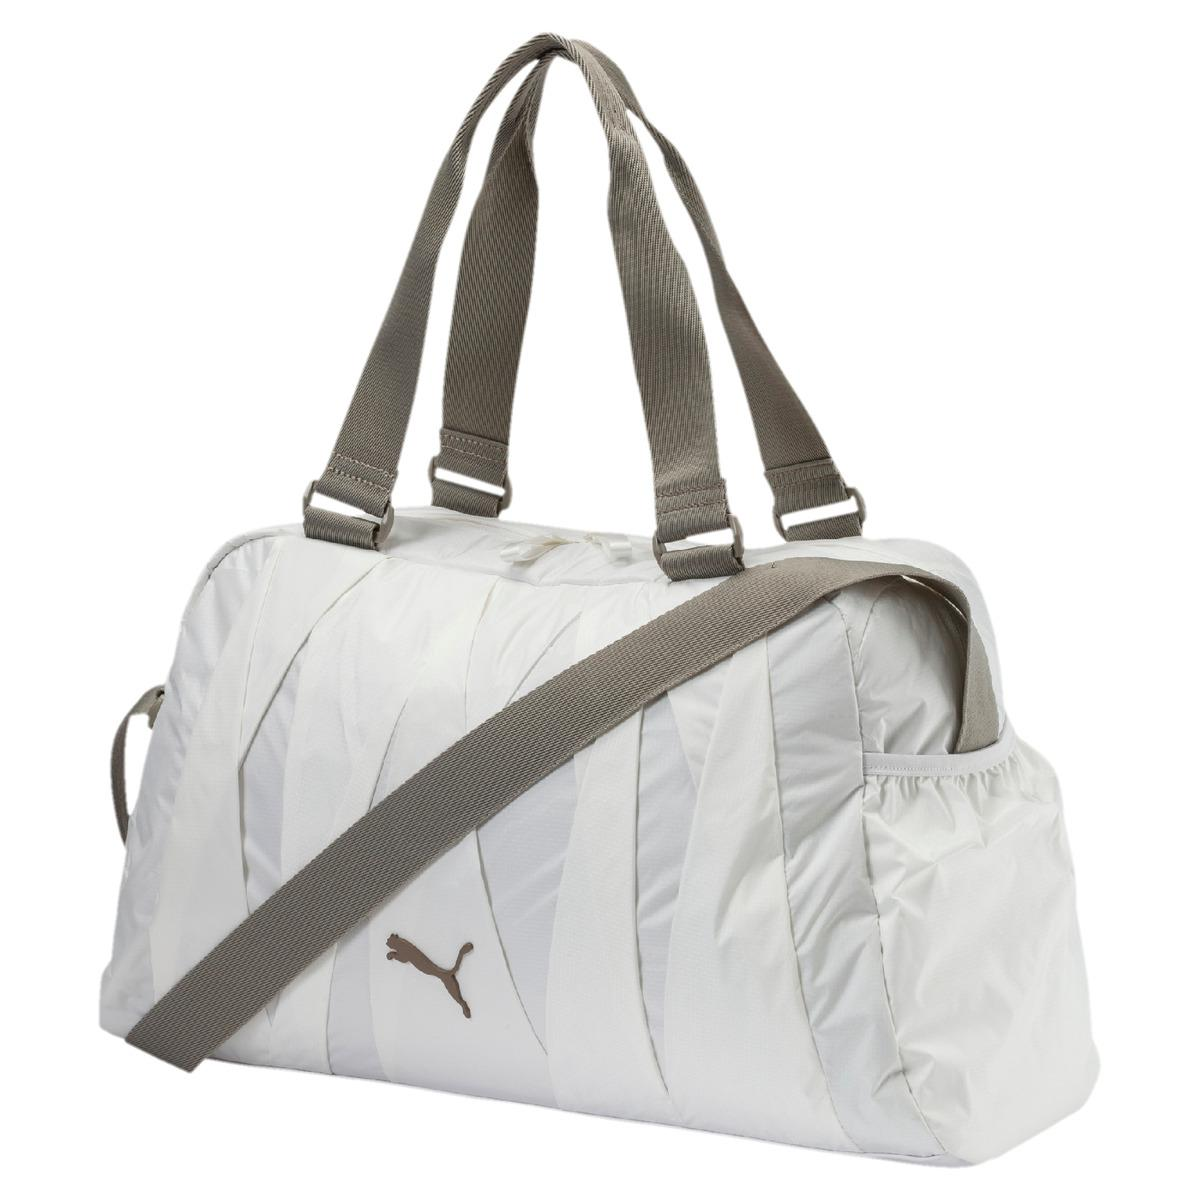 59c05dc6103 PUMA En Pointe Sports Bag in White for Men - Lyst